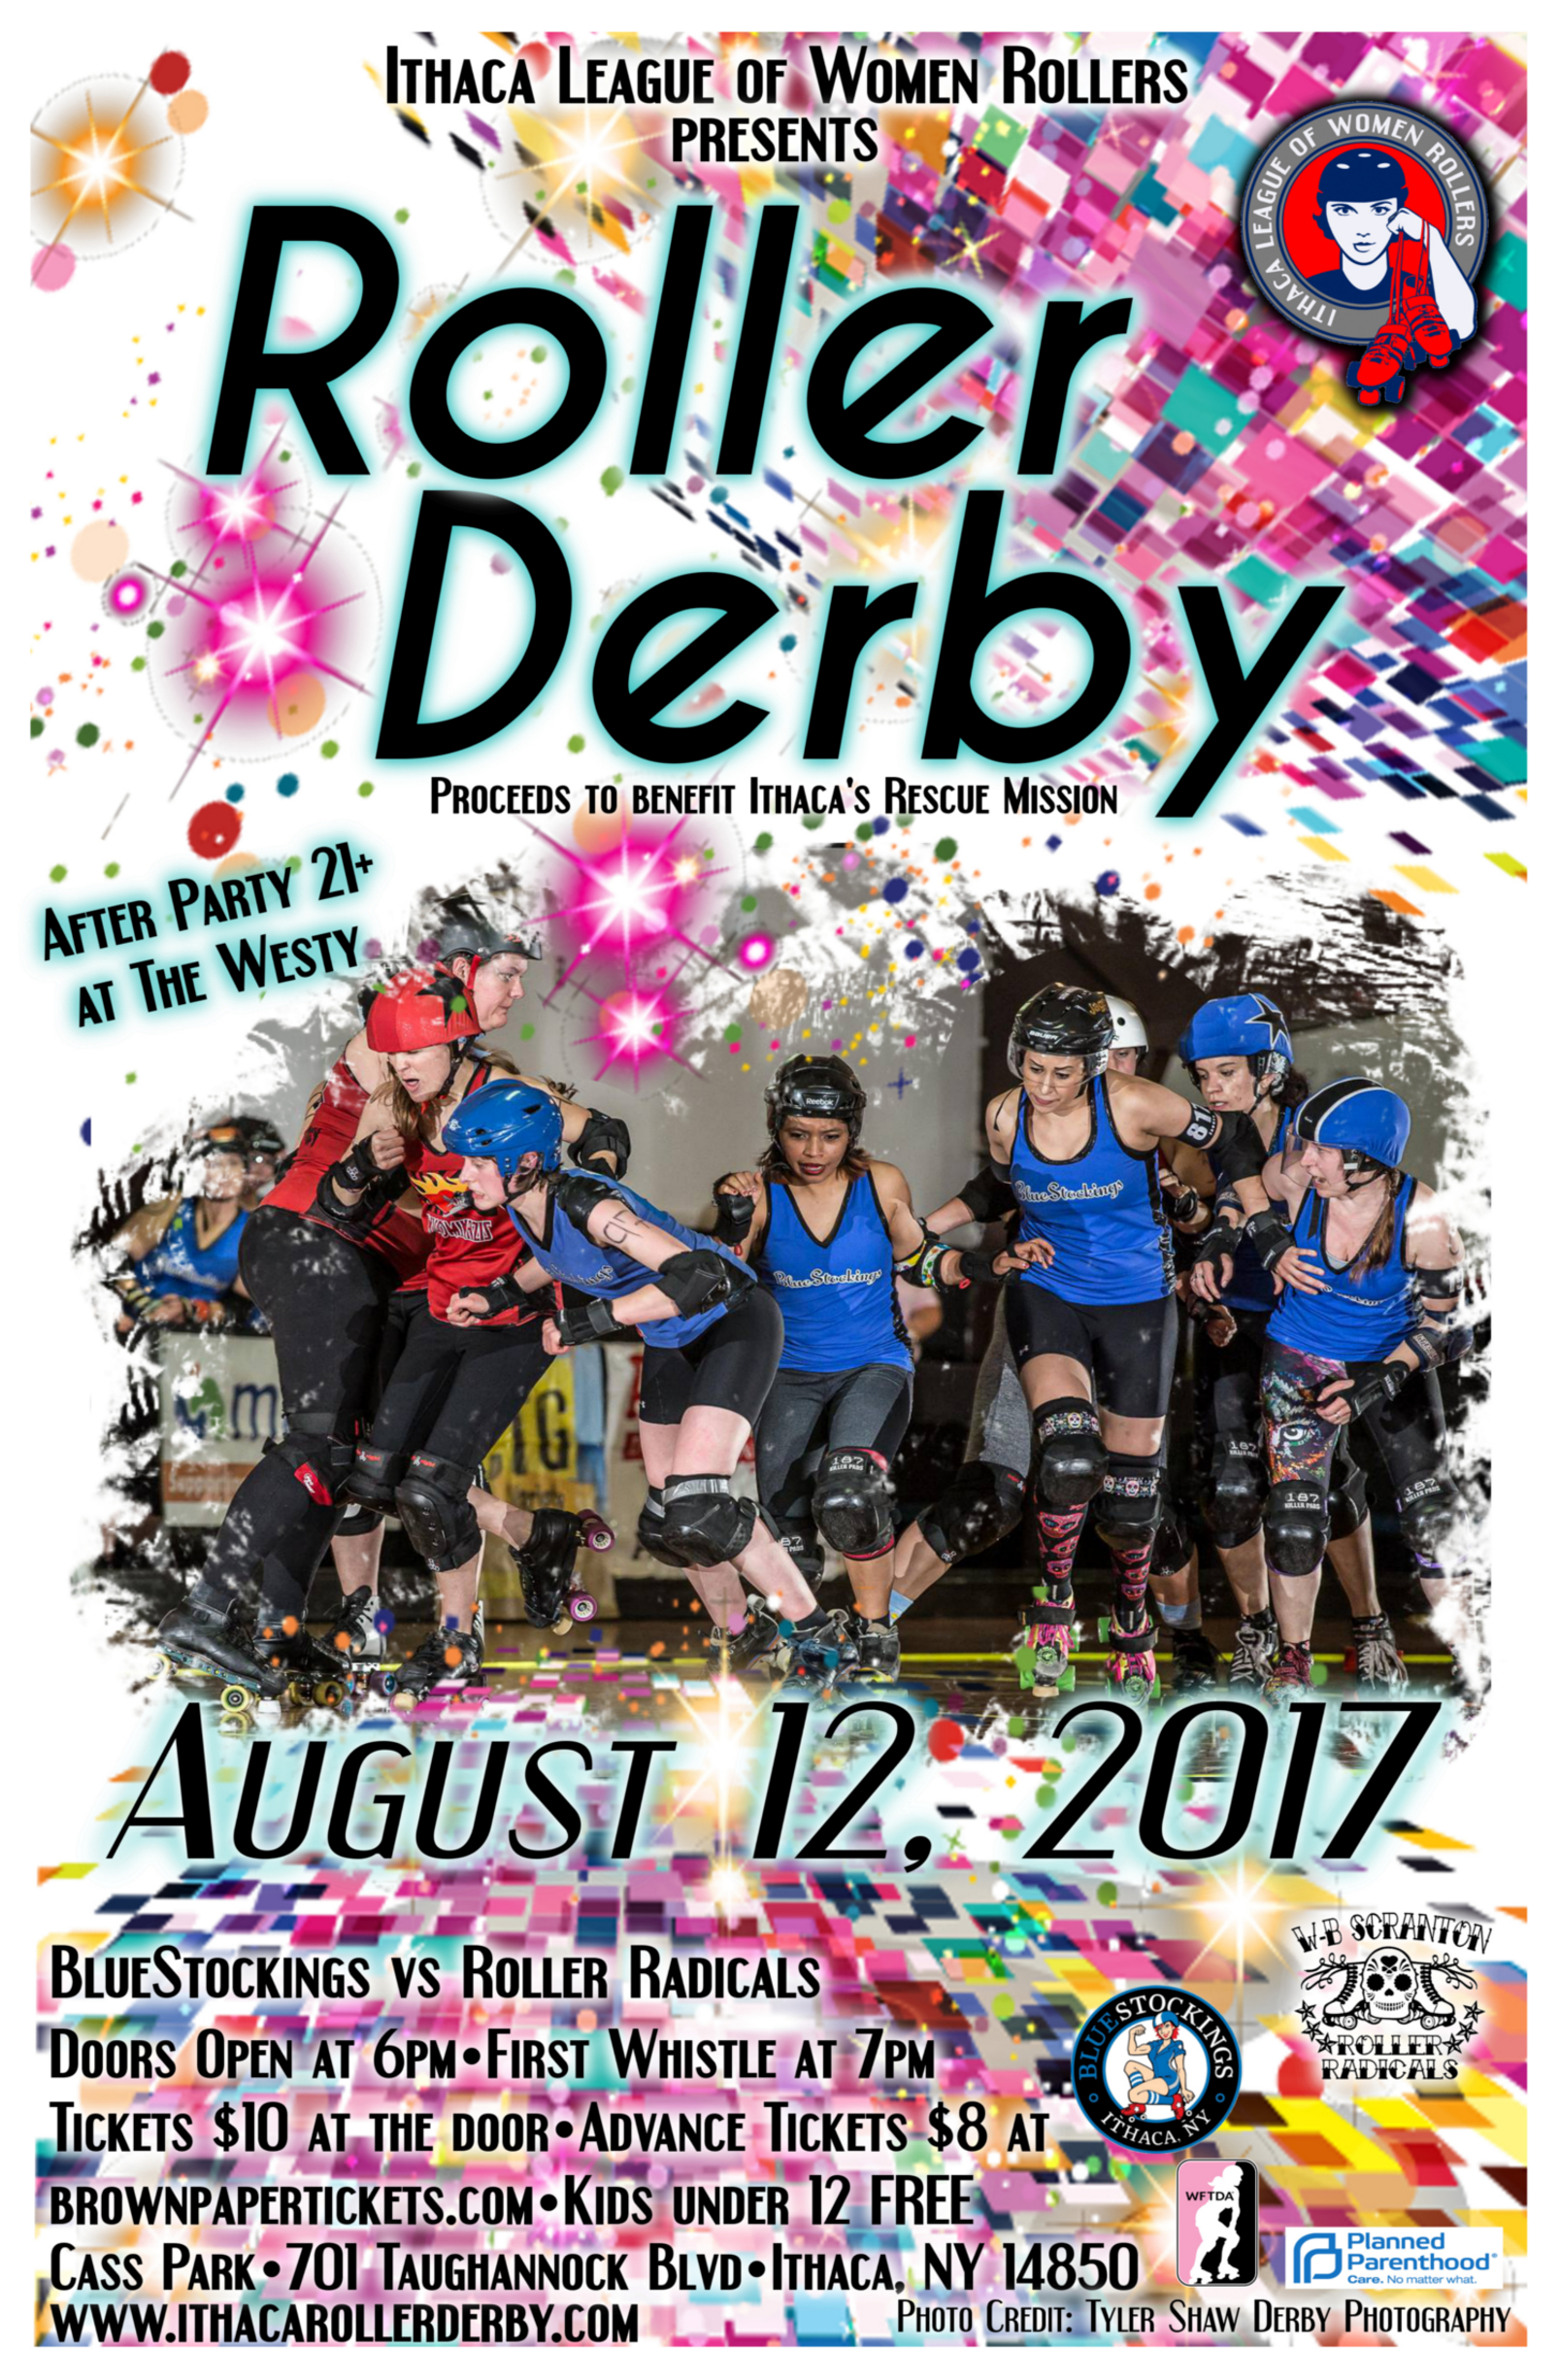 State of the blog and weekend links august 6 2017 sf bluestocking - On Saturday August 12th The Ithaca Bluestockings Take On Wilkes Barre Scranton Roller Radicals First Whistle At 7pm This Is The Last Home Bout Of Ilwr S